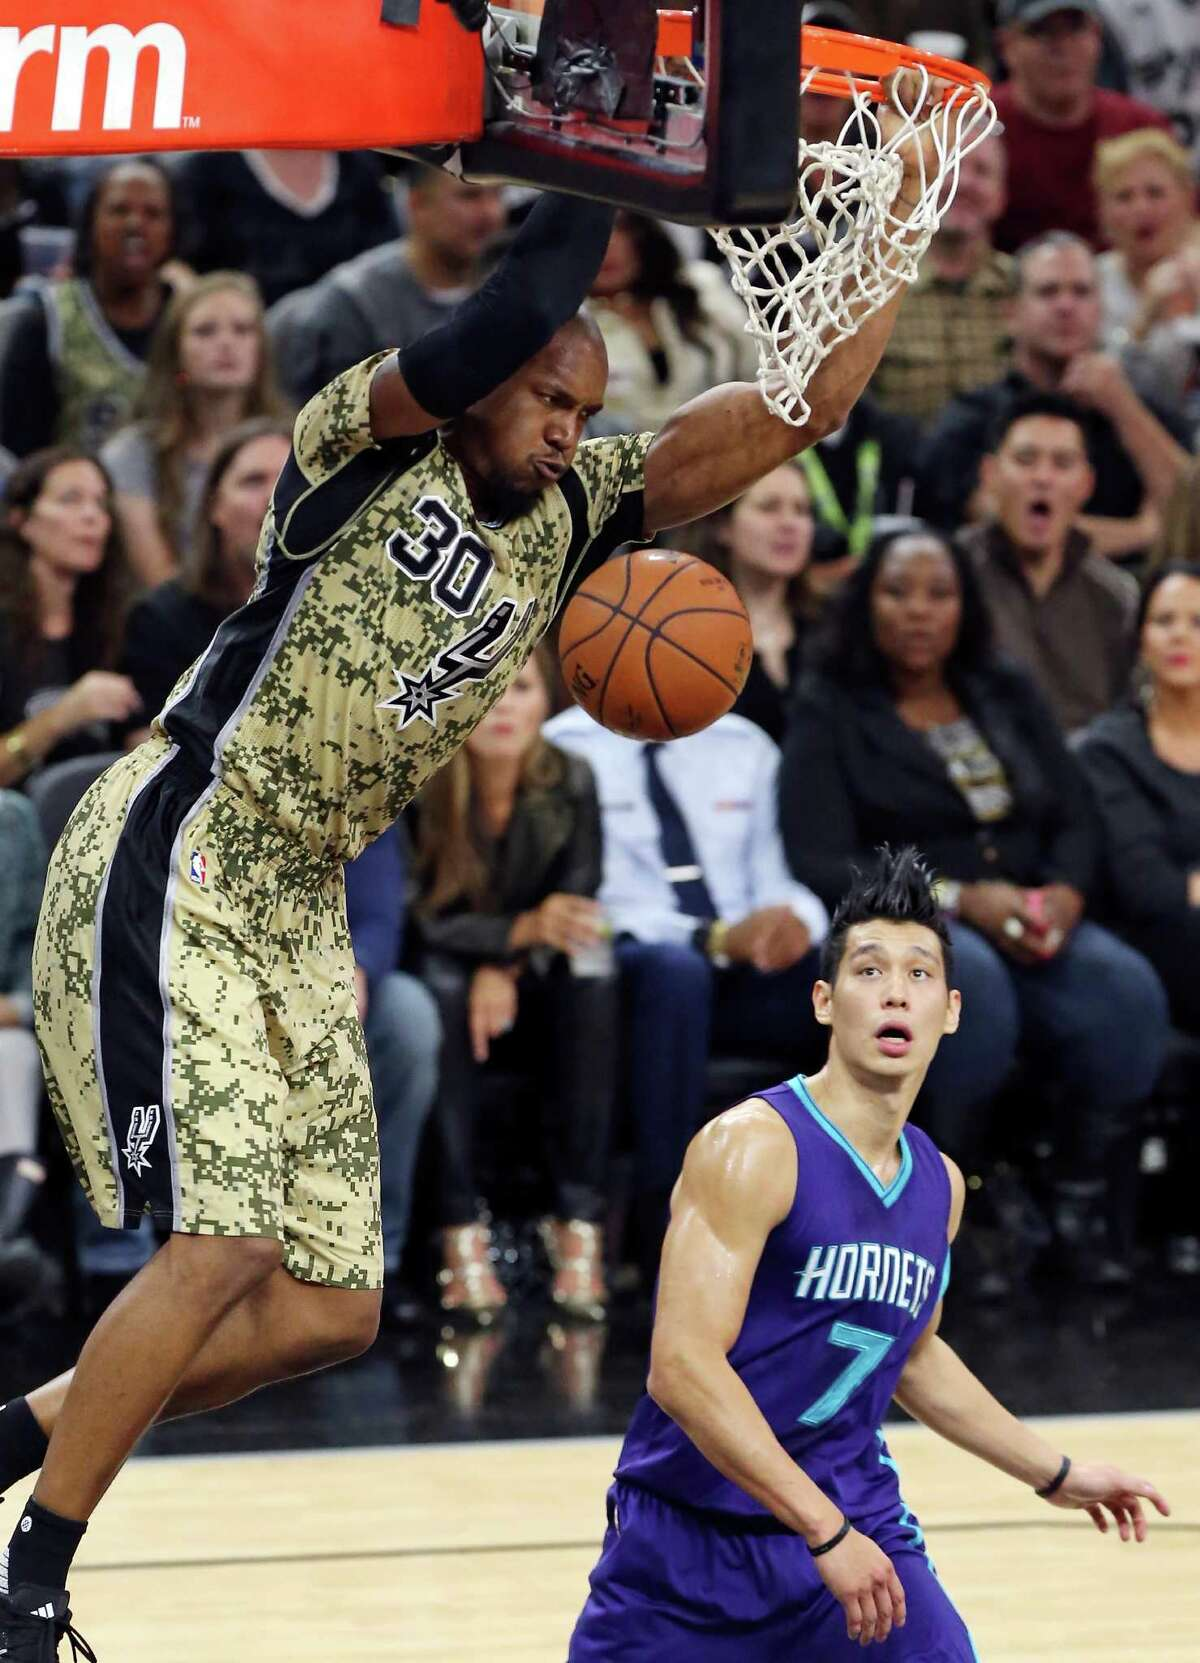 San Antonio Spurs' David West dunks as Charlotte Hornets' Jeremy Lin looks on during second half action against the Charlotte Hornets Saturday Nov. 7, 2015 at the AT&T Center. The Spurs won 114-94.